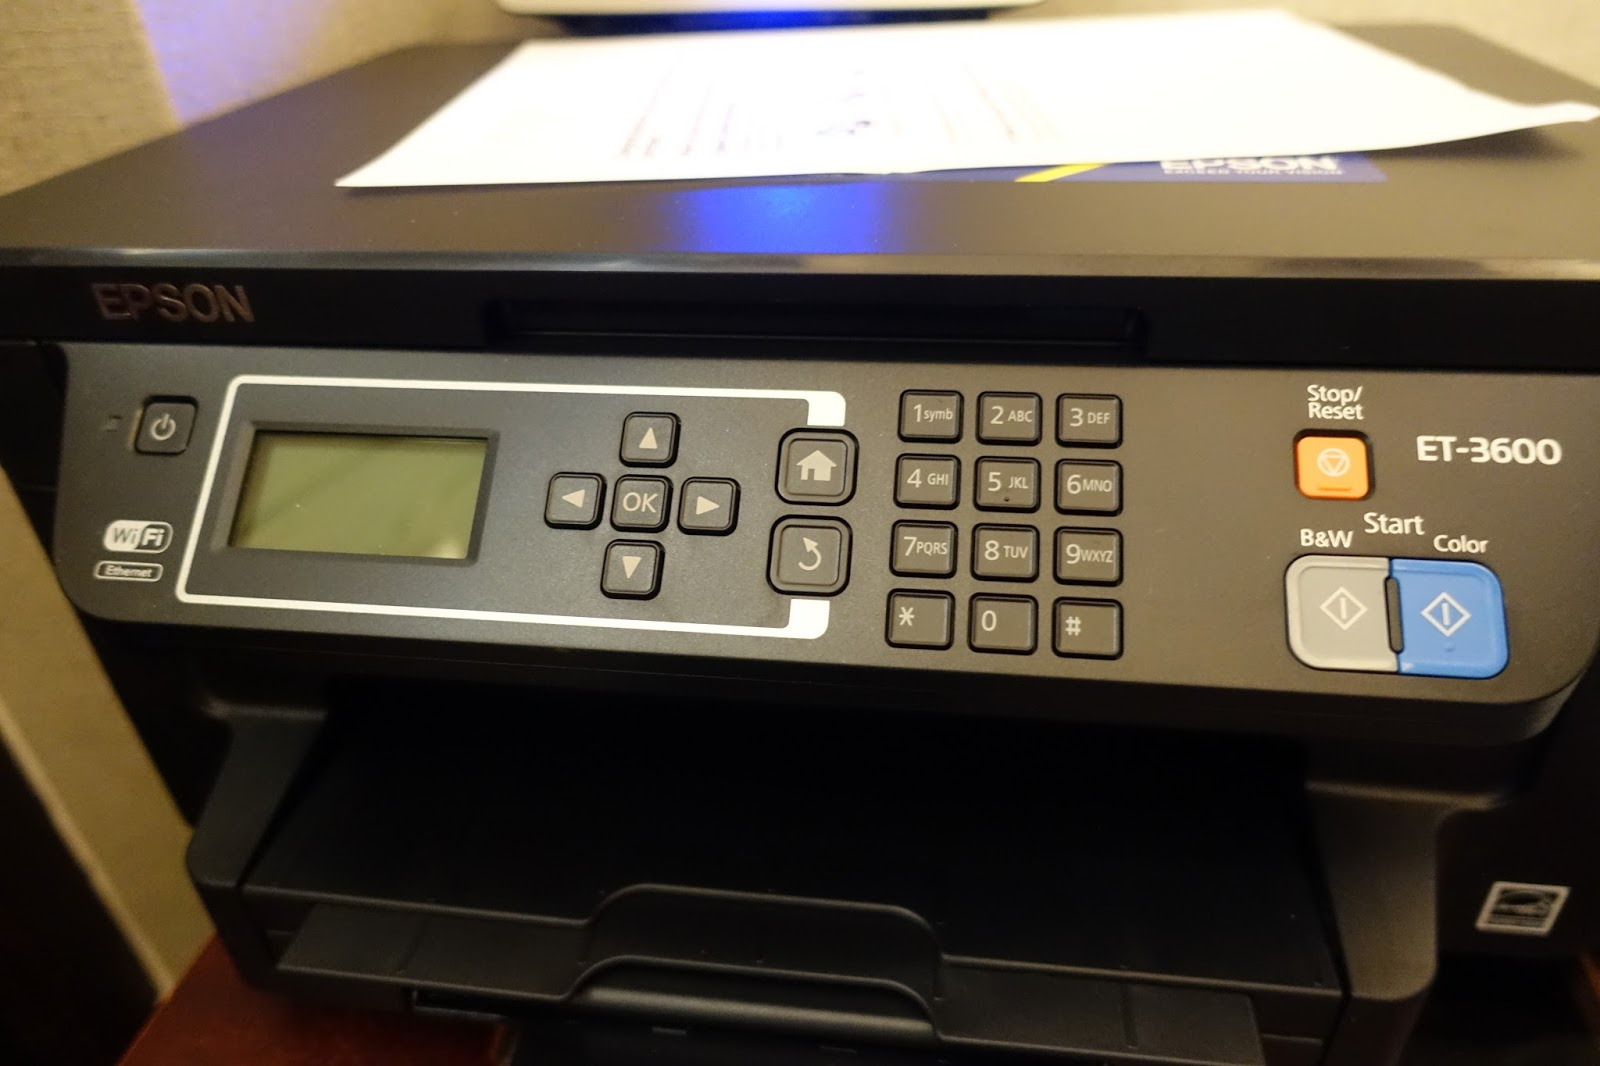 Epson Printer ET 3600 : review - This day I love